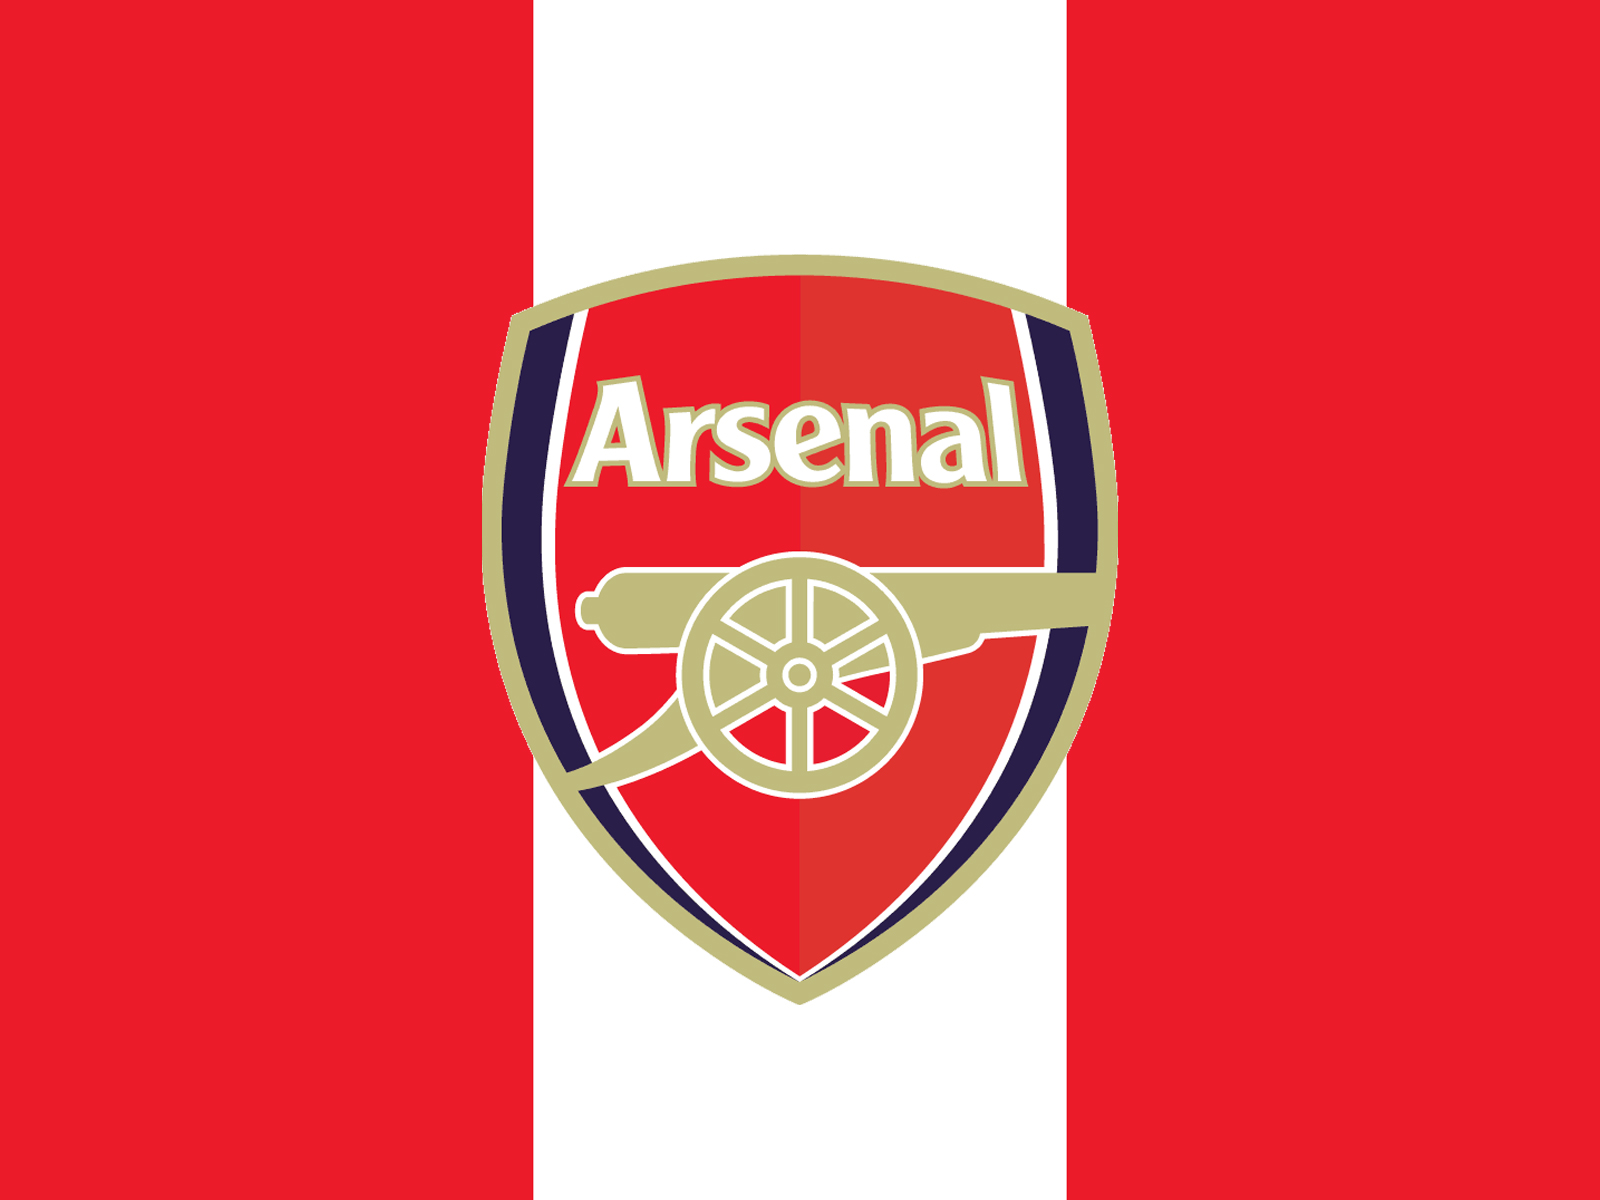 High Resolution Wallpaper | Arsenal F.C. 1600x1200 px